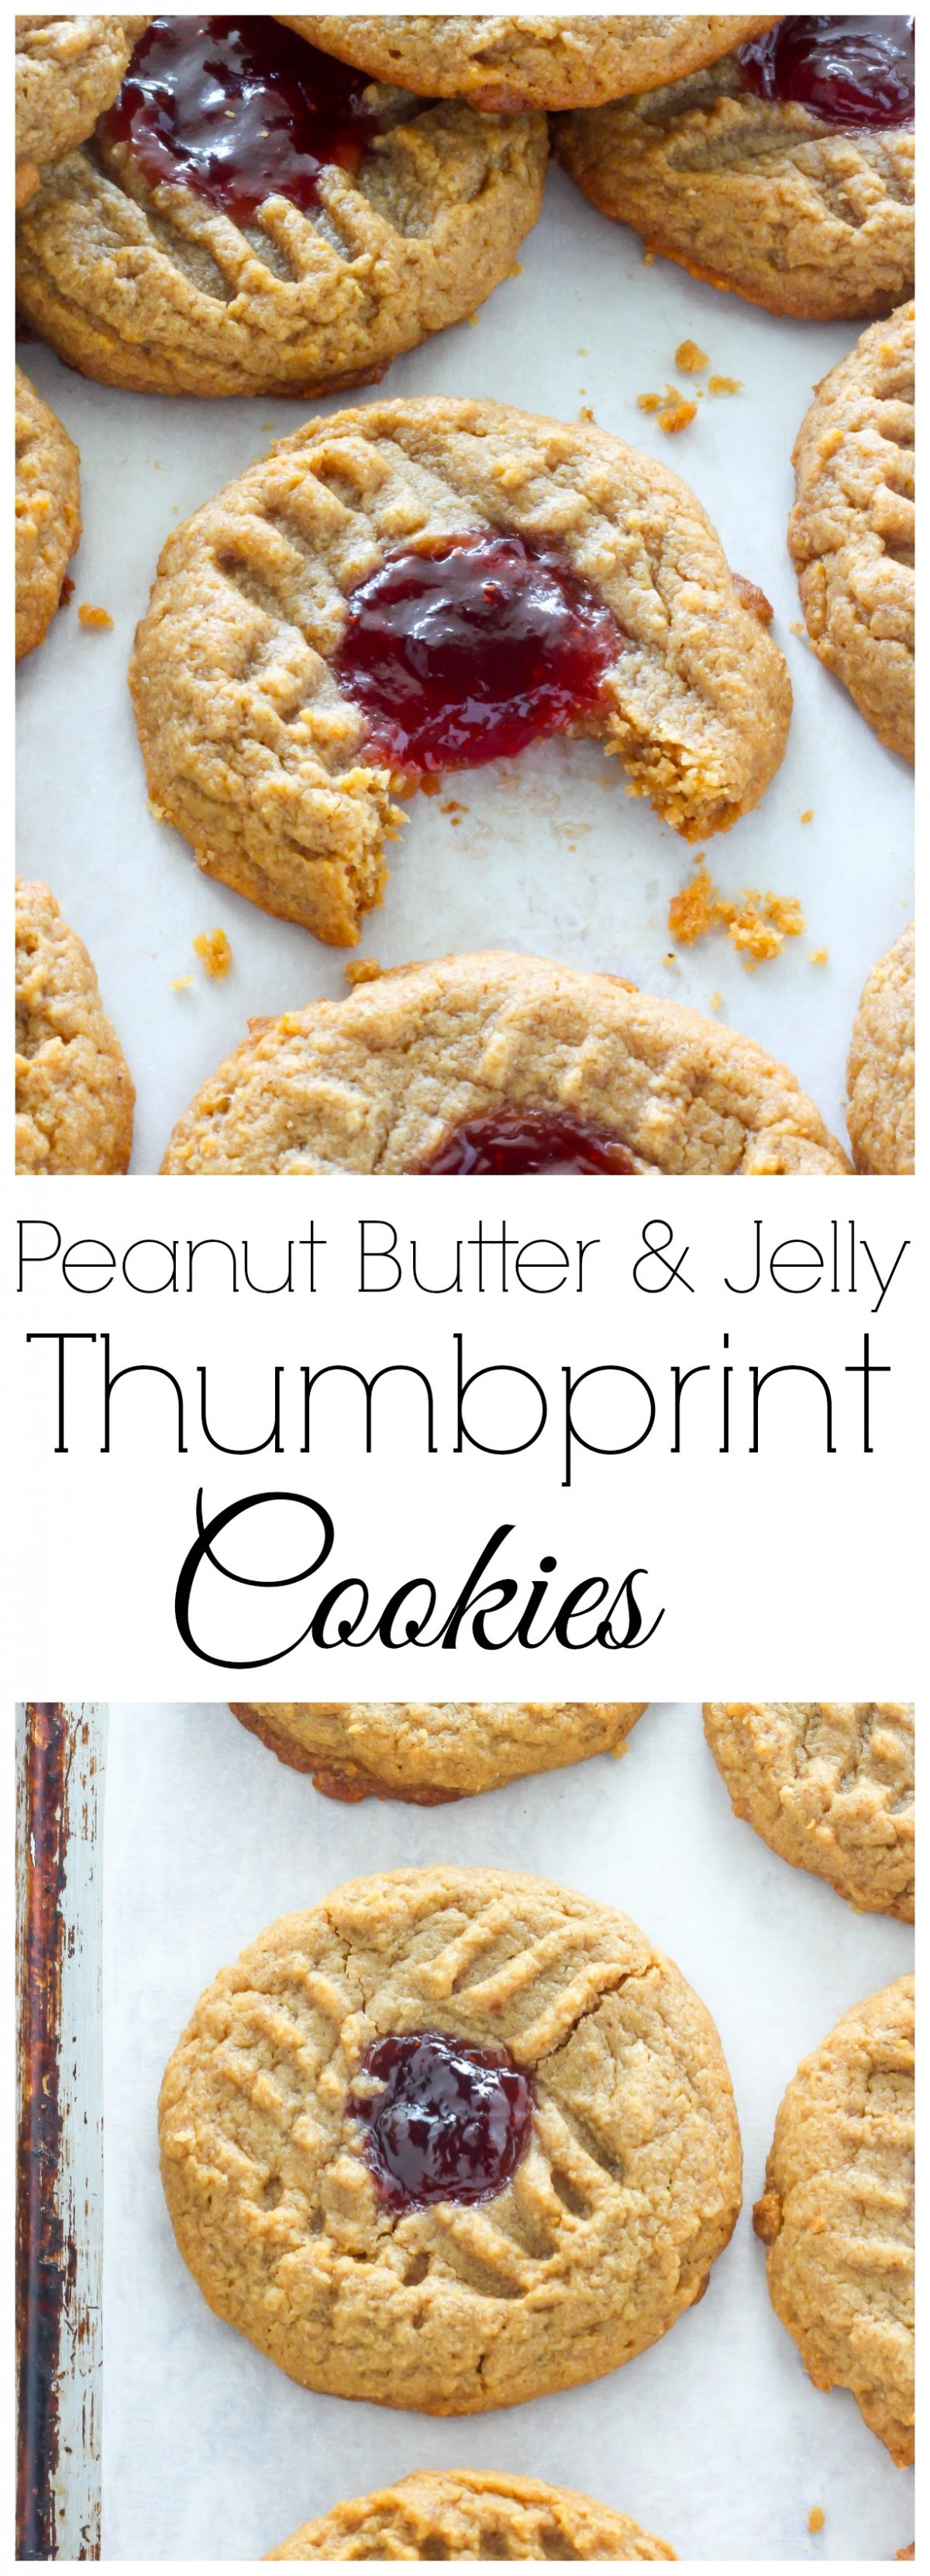 Flourless Peanut Butter and Jelly Thumbprint Cookies ...